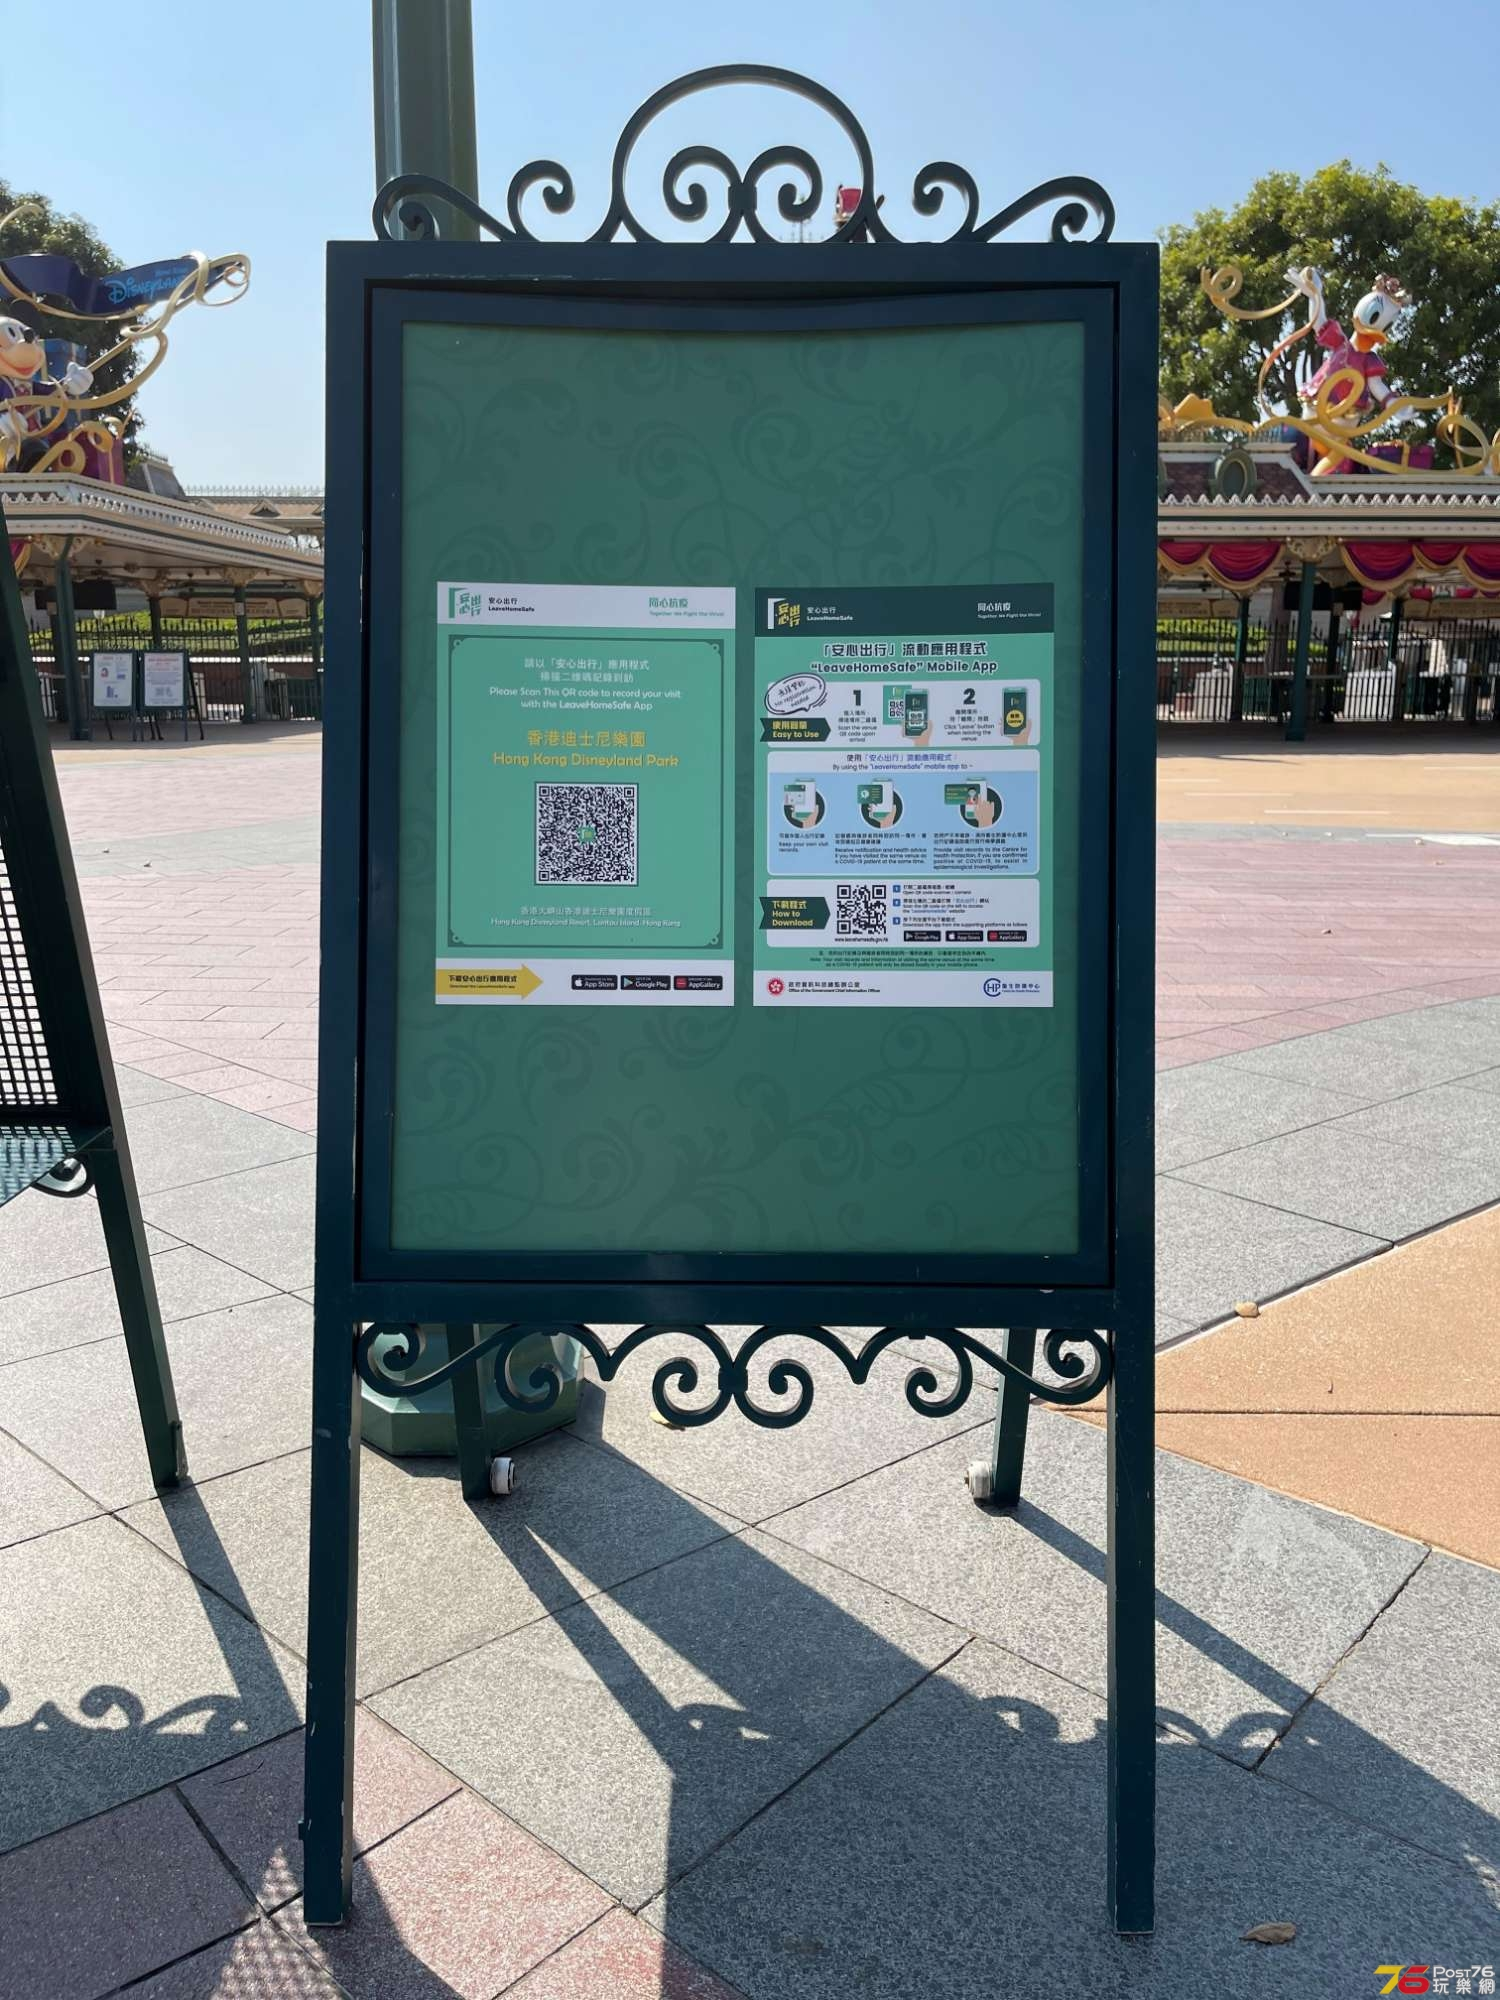 HKDL_Reopening_Health and Safety Measures_LeaveHomeSafe QR Code.jpg